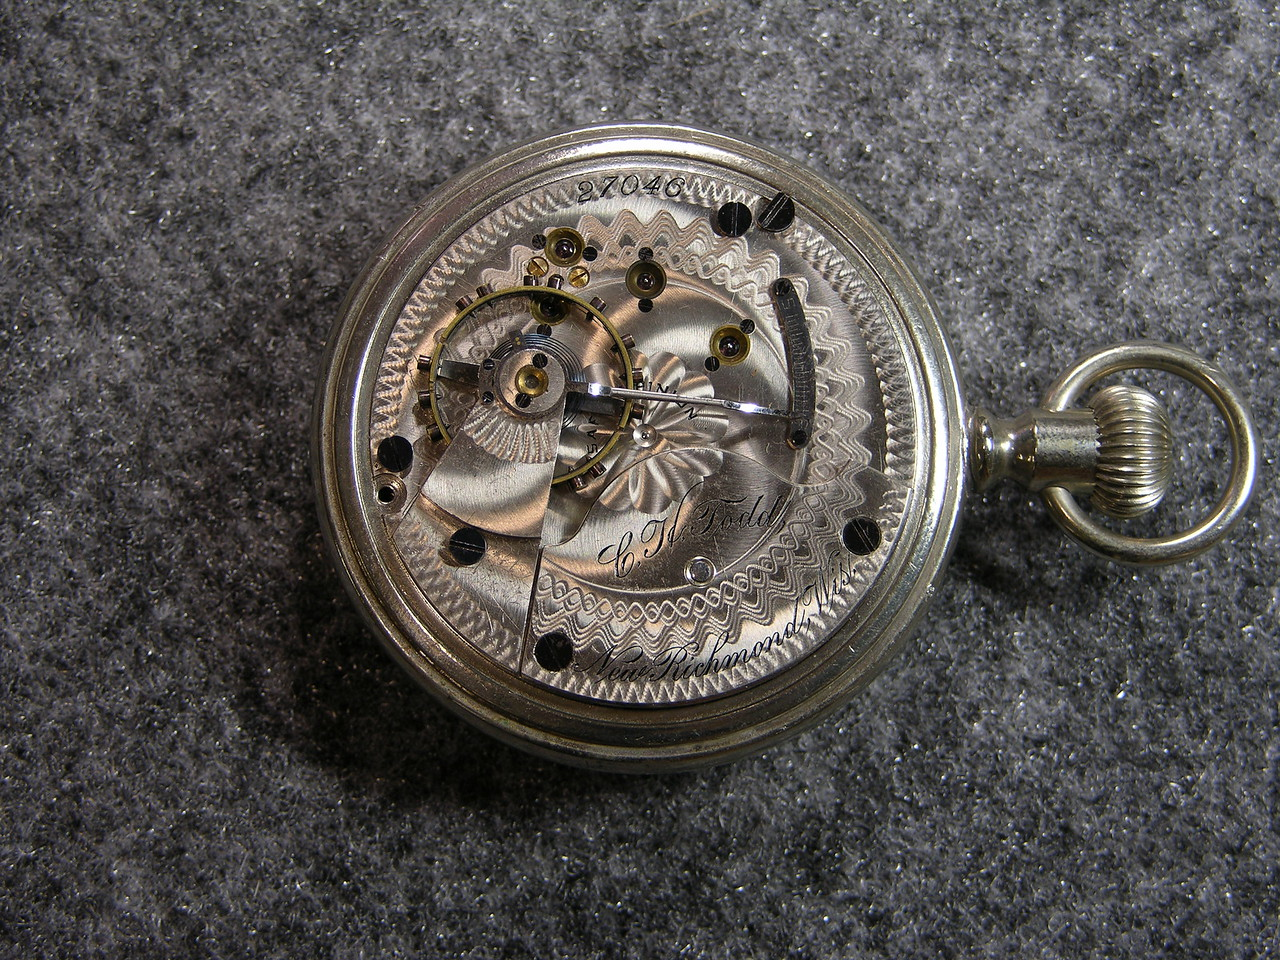 929 movement, SN 27046                          15 jewels, manufactured 1895-1900          total production 5,900